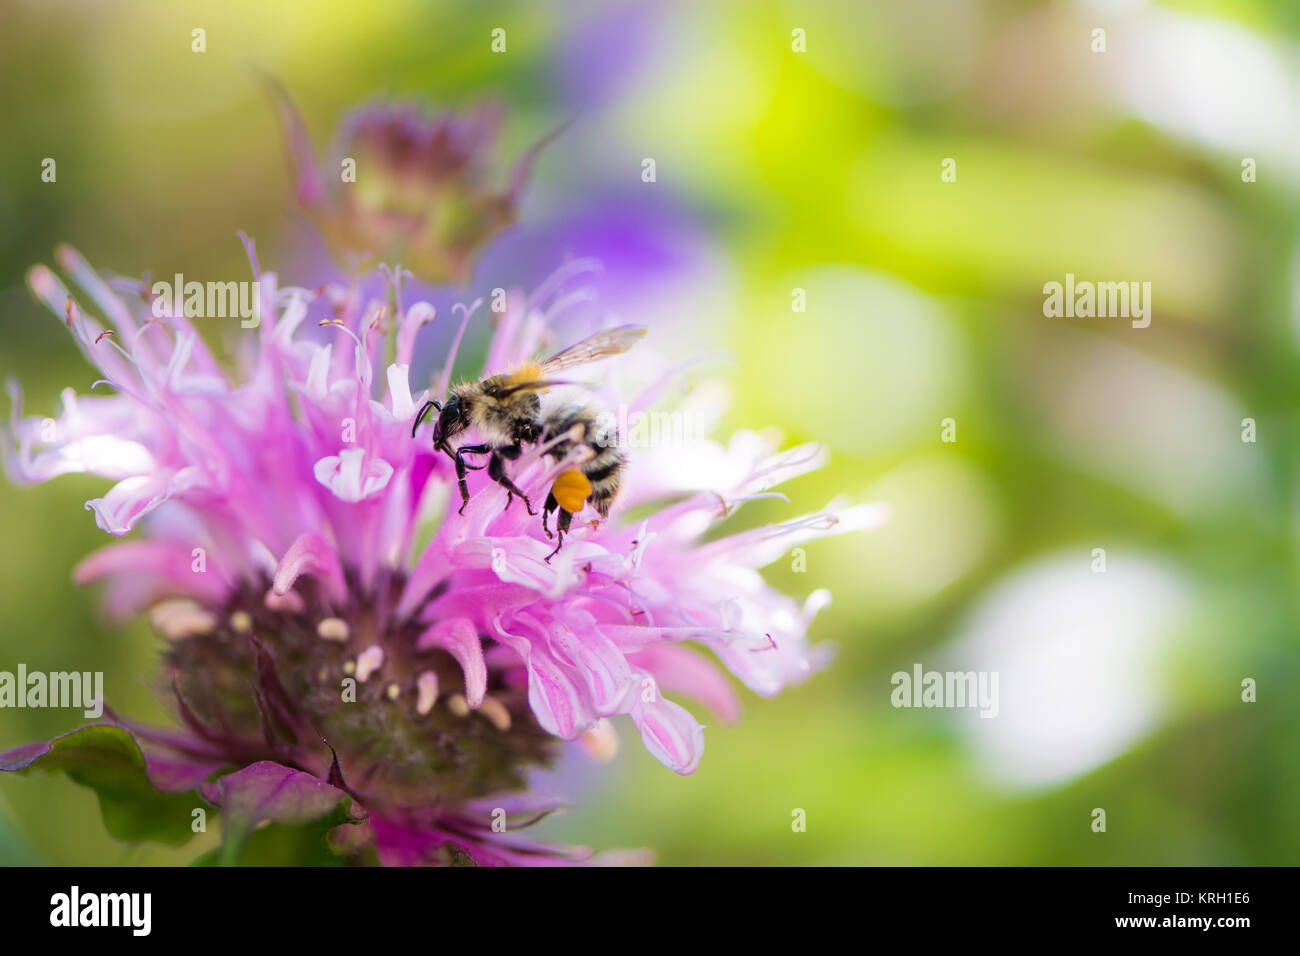 Bee on a scarlet beebalm flower blossom Stock Photo